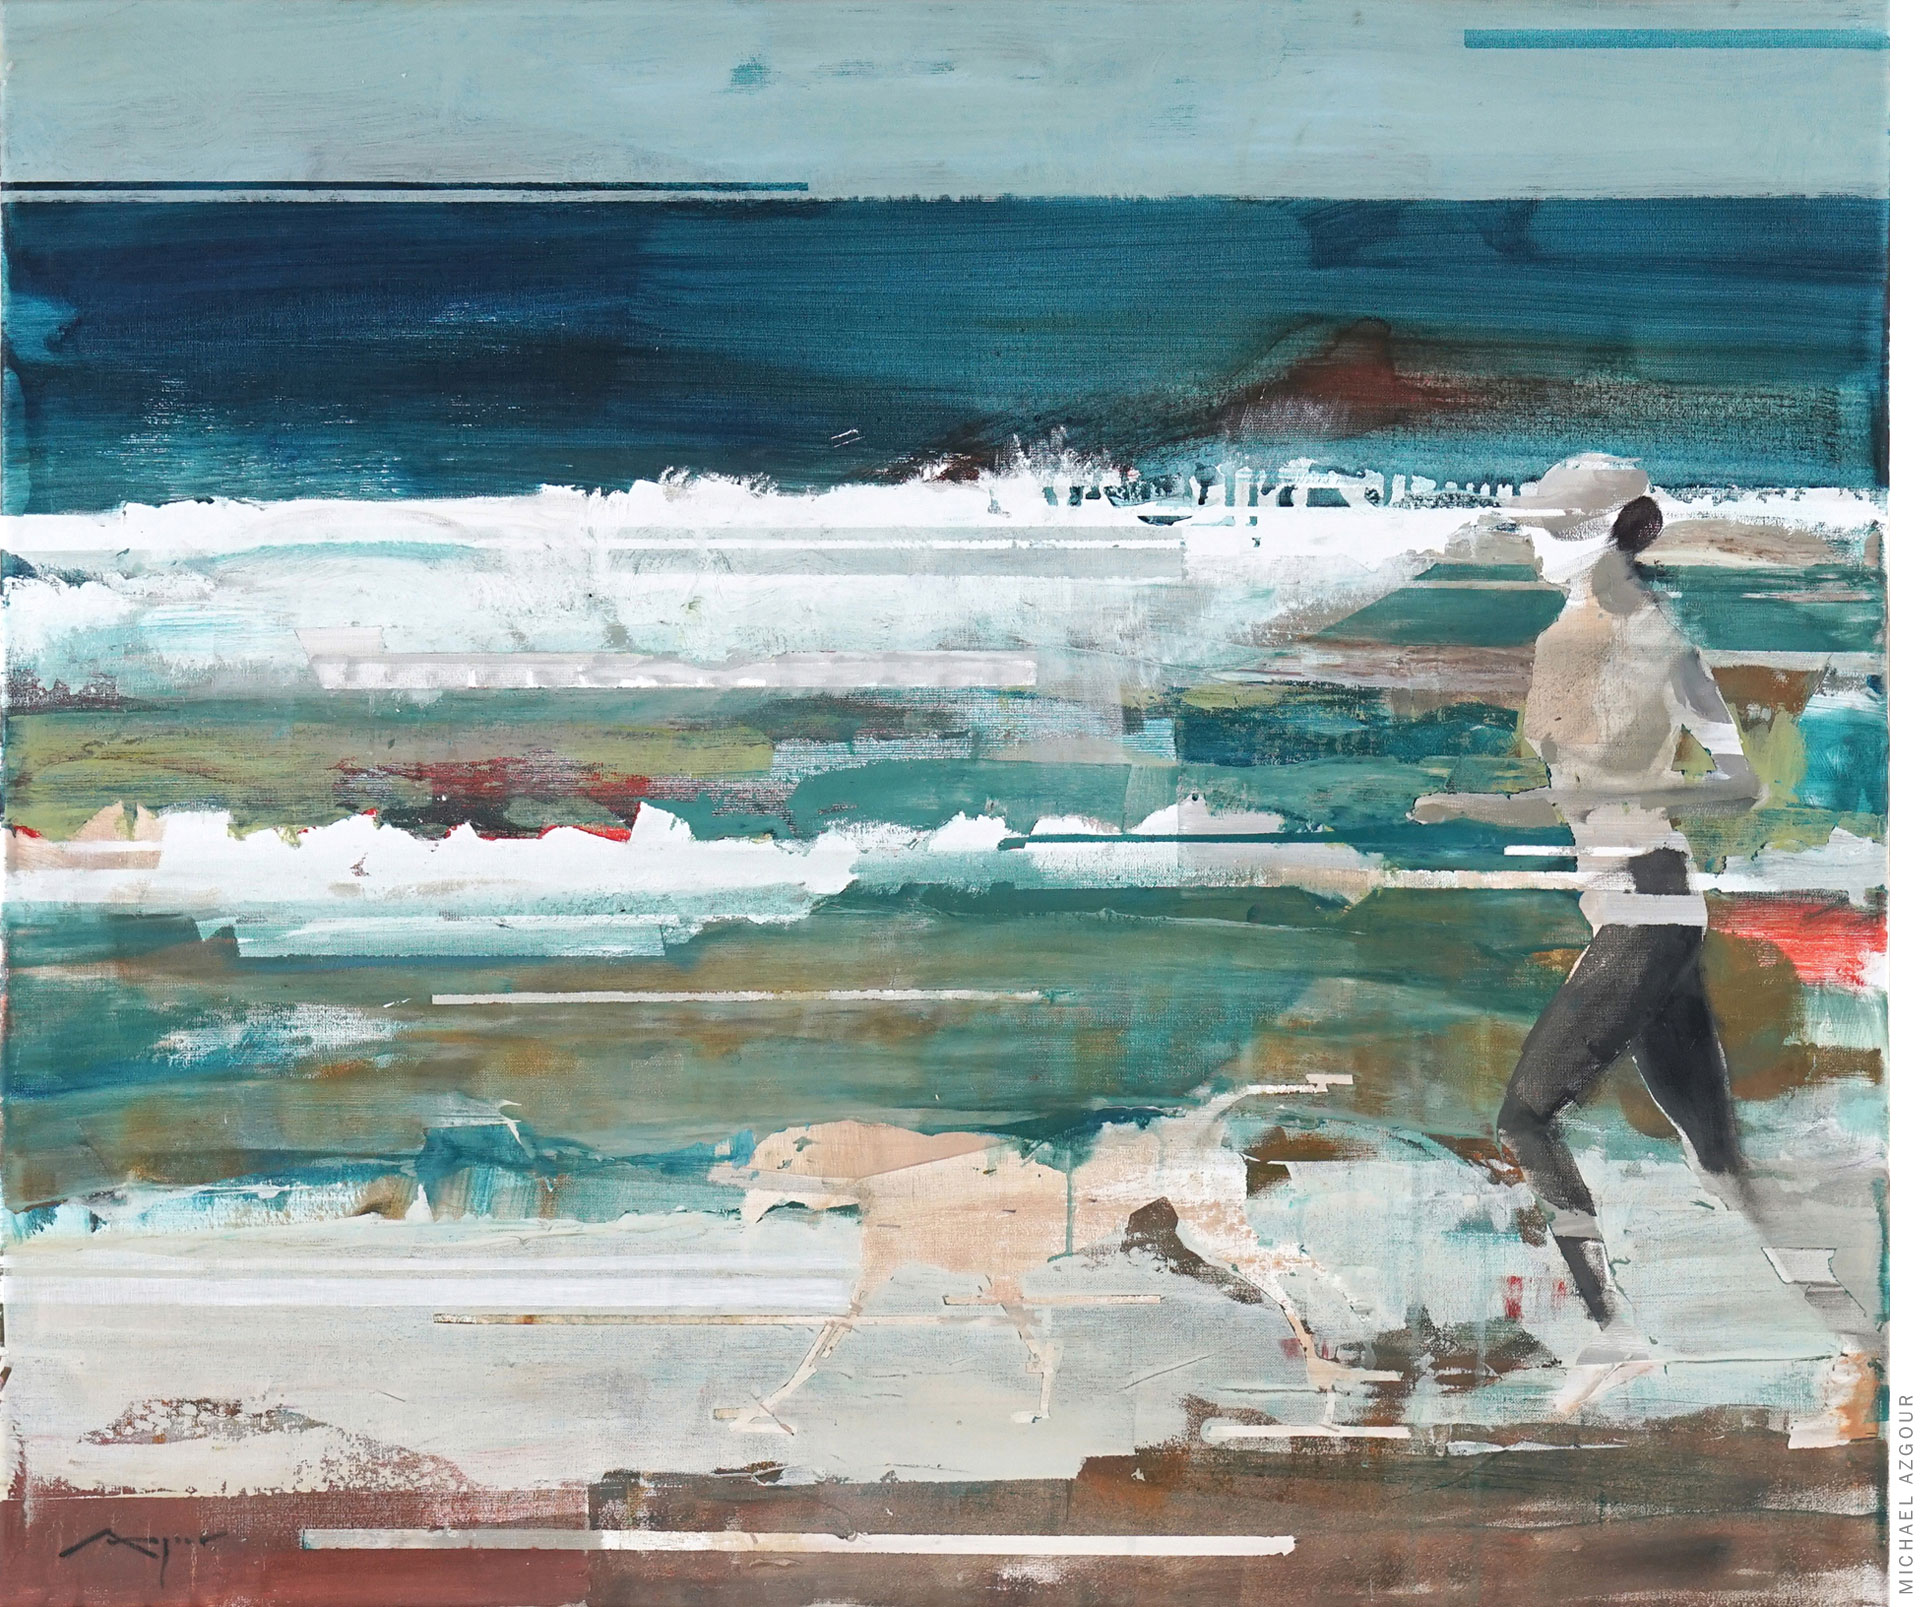 Runner and Her Dog, by Michael Azgour